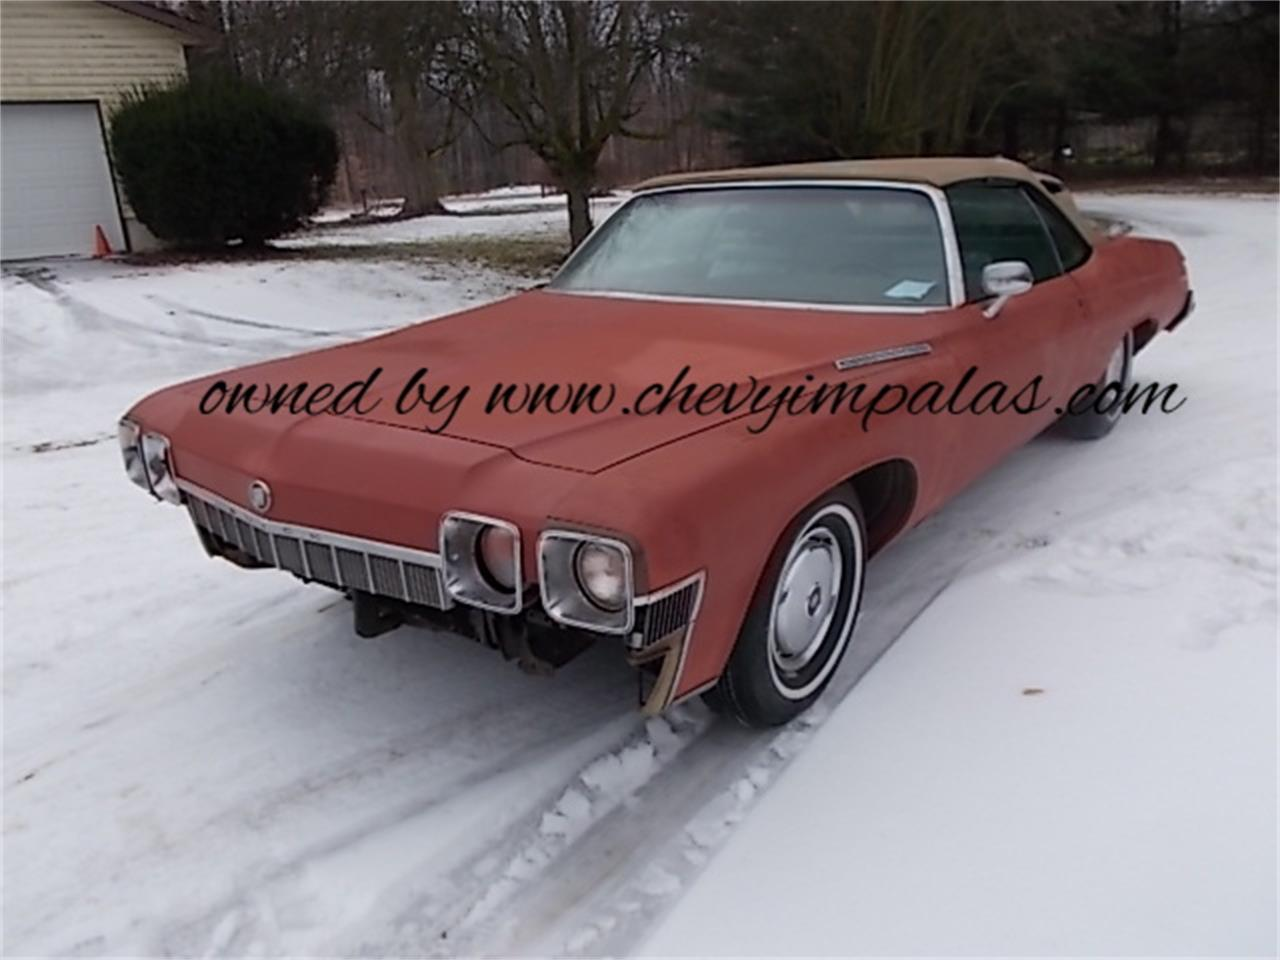 Peachy 1974 Buick Lesabre For Sale In Creston Oh Classiccarsbay Com Gmtry Best Dining Table And Chair Ideas Images Gmtryco